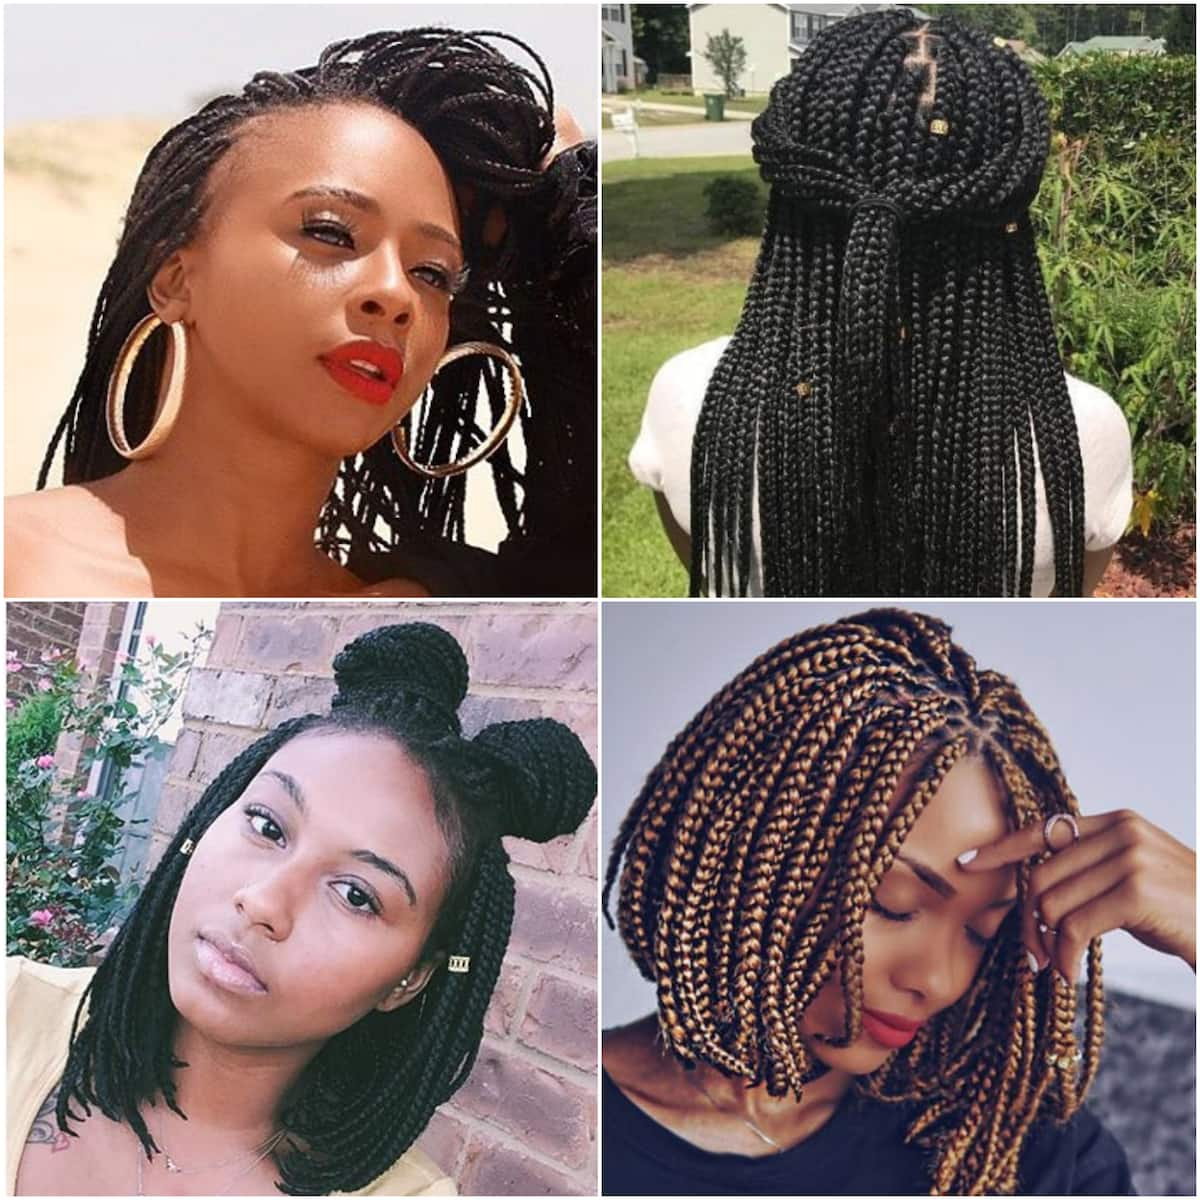 How to style braids 2020